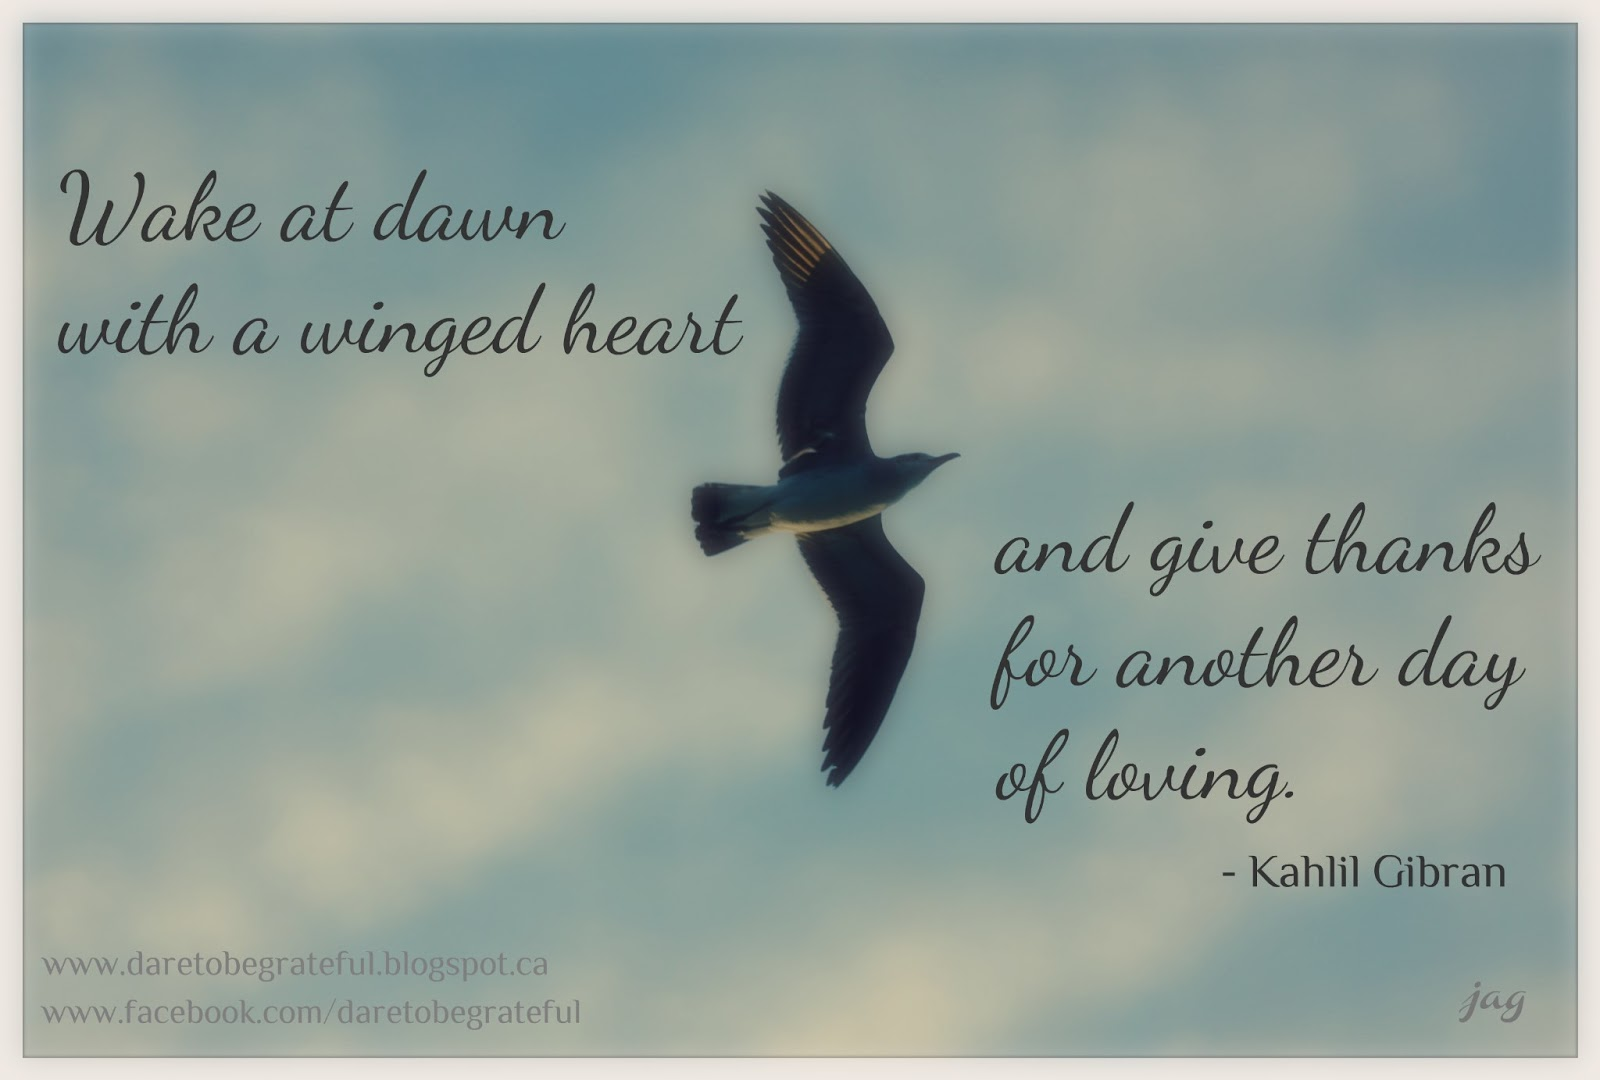 Quotes About Love Kahlil Gibran : the gratitude project : in the words of... kahlil gibran